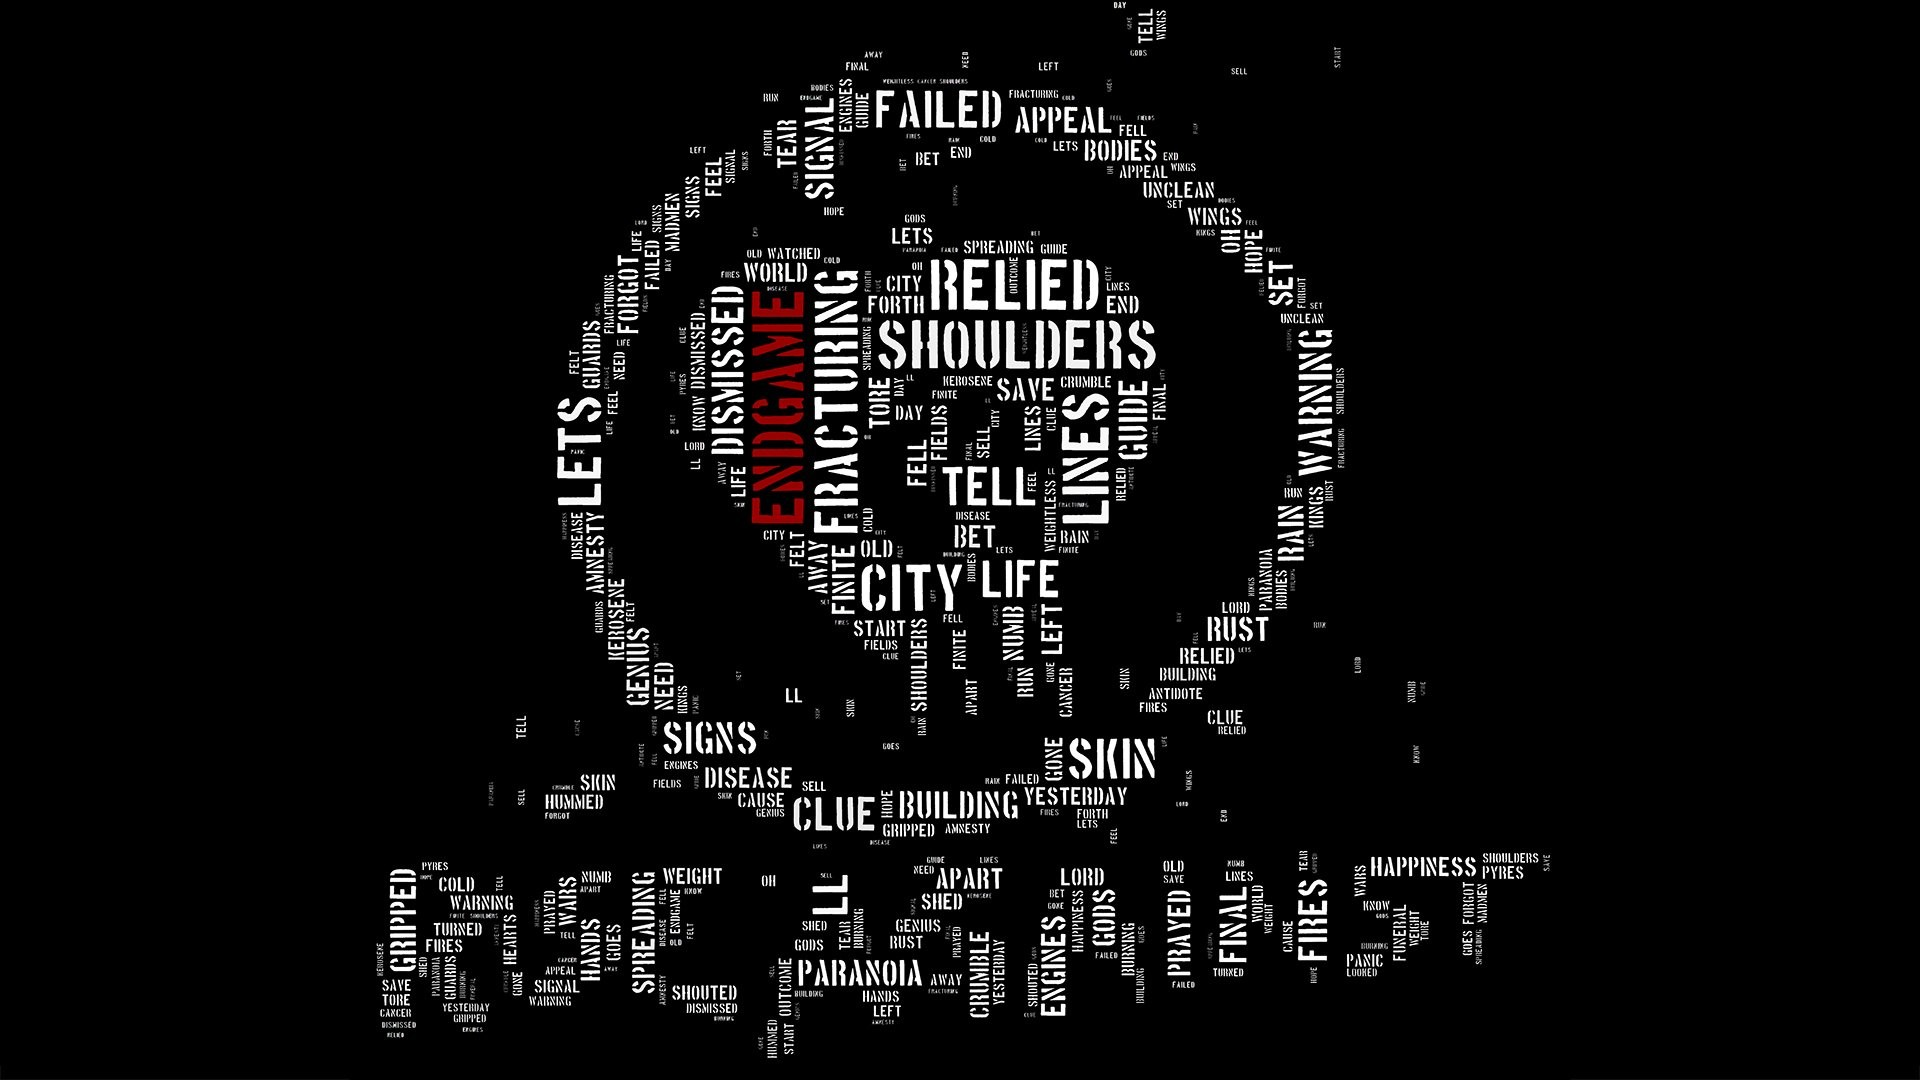 Res: 1920x1080, HD Wallpaper | Background Image ID:332403.  Music Rise Against